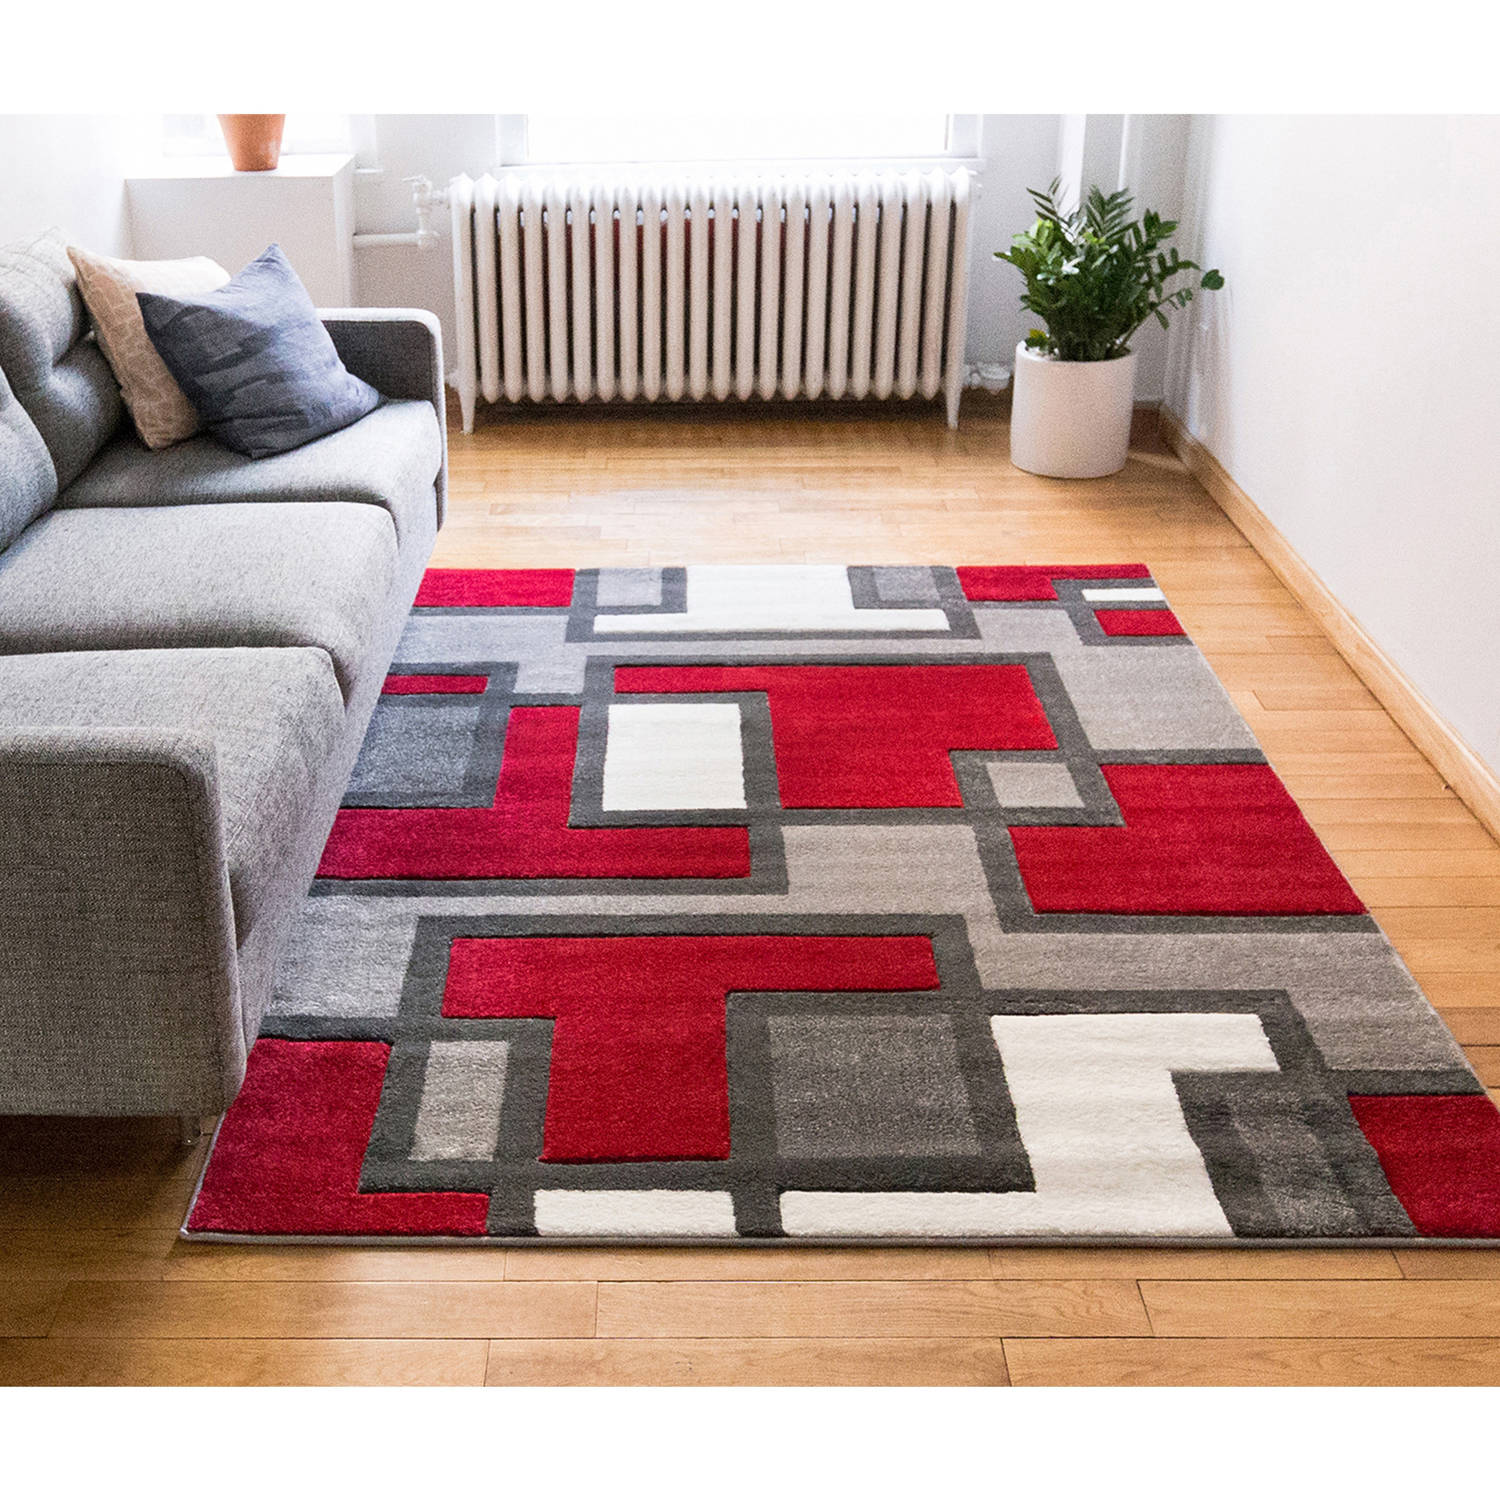 Well Woven Ruby Imagination Squares Contemporary Area/Runner Rug